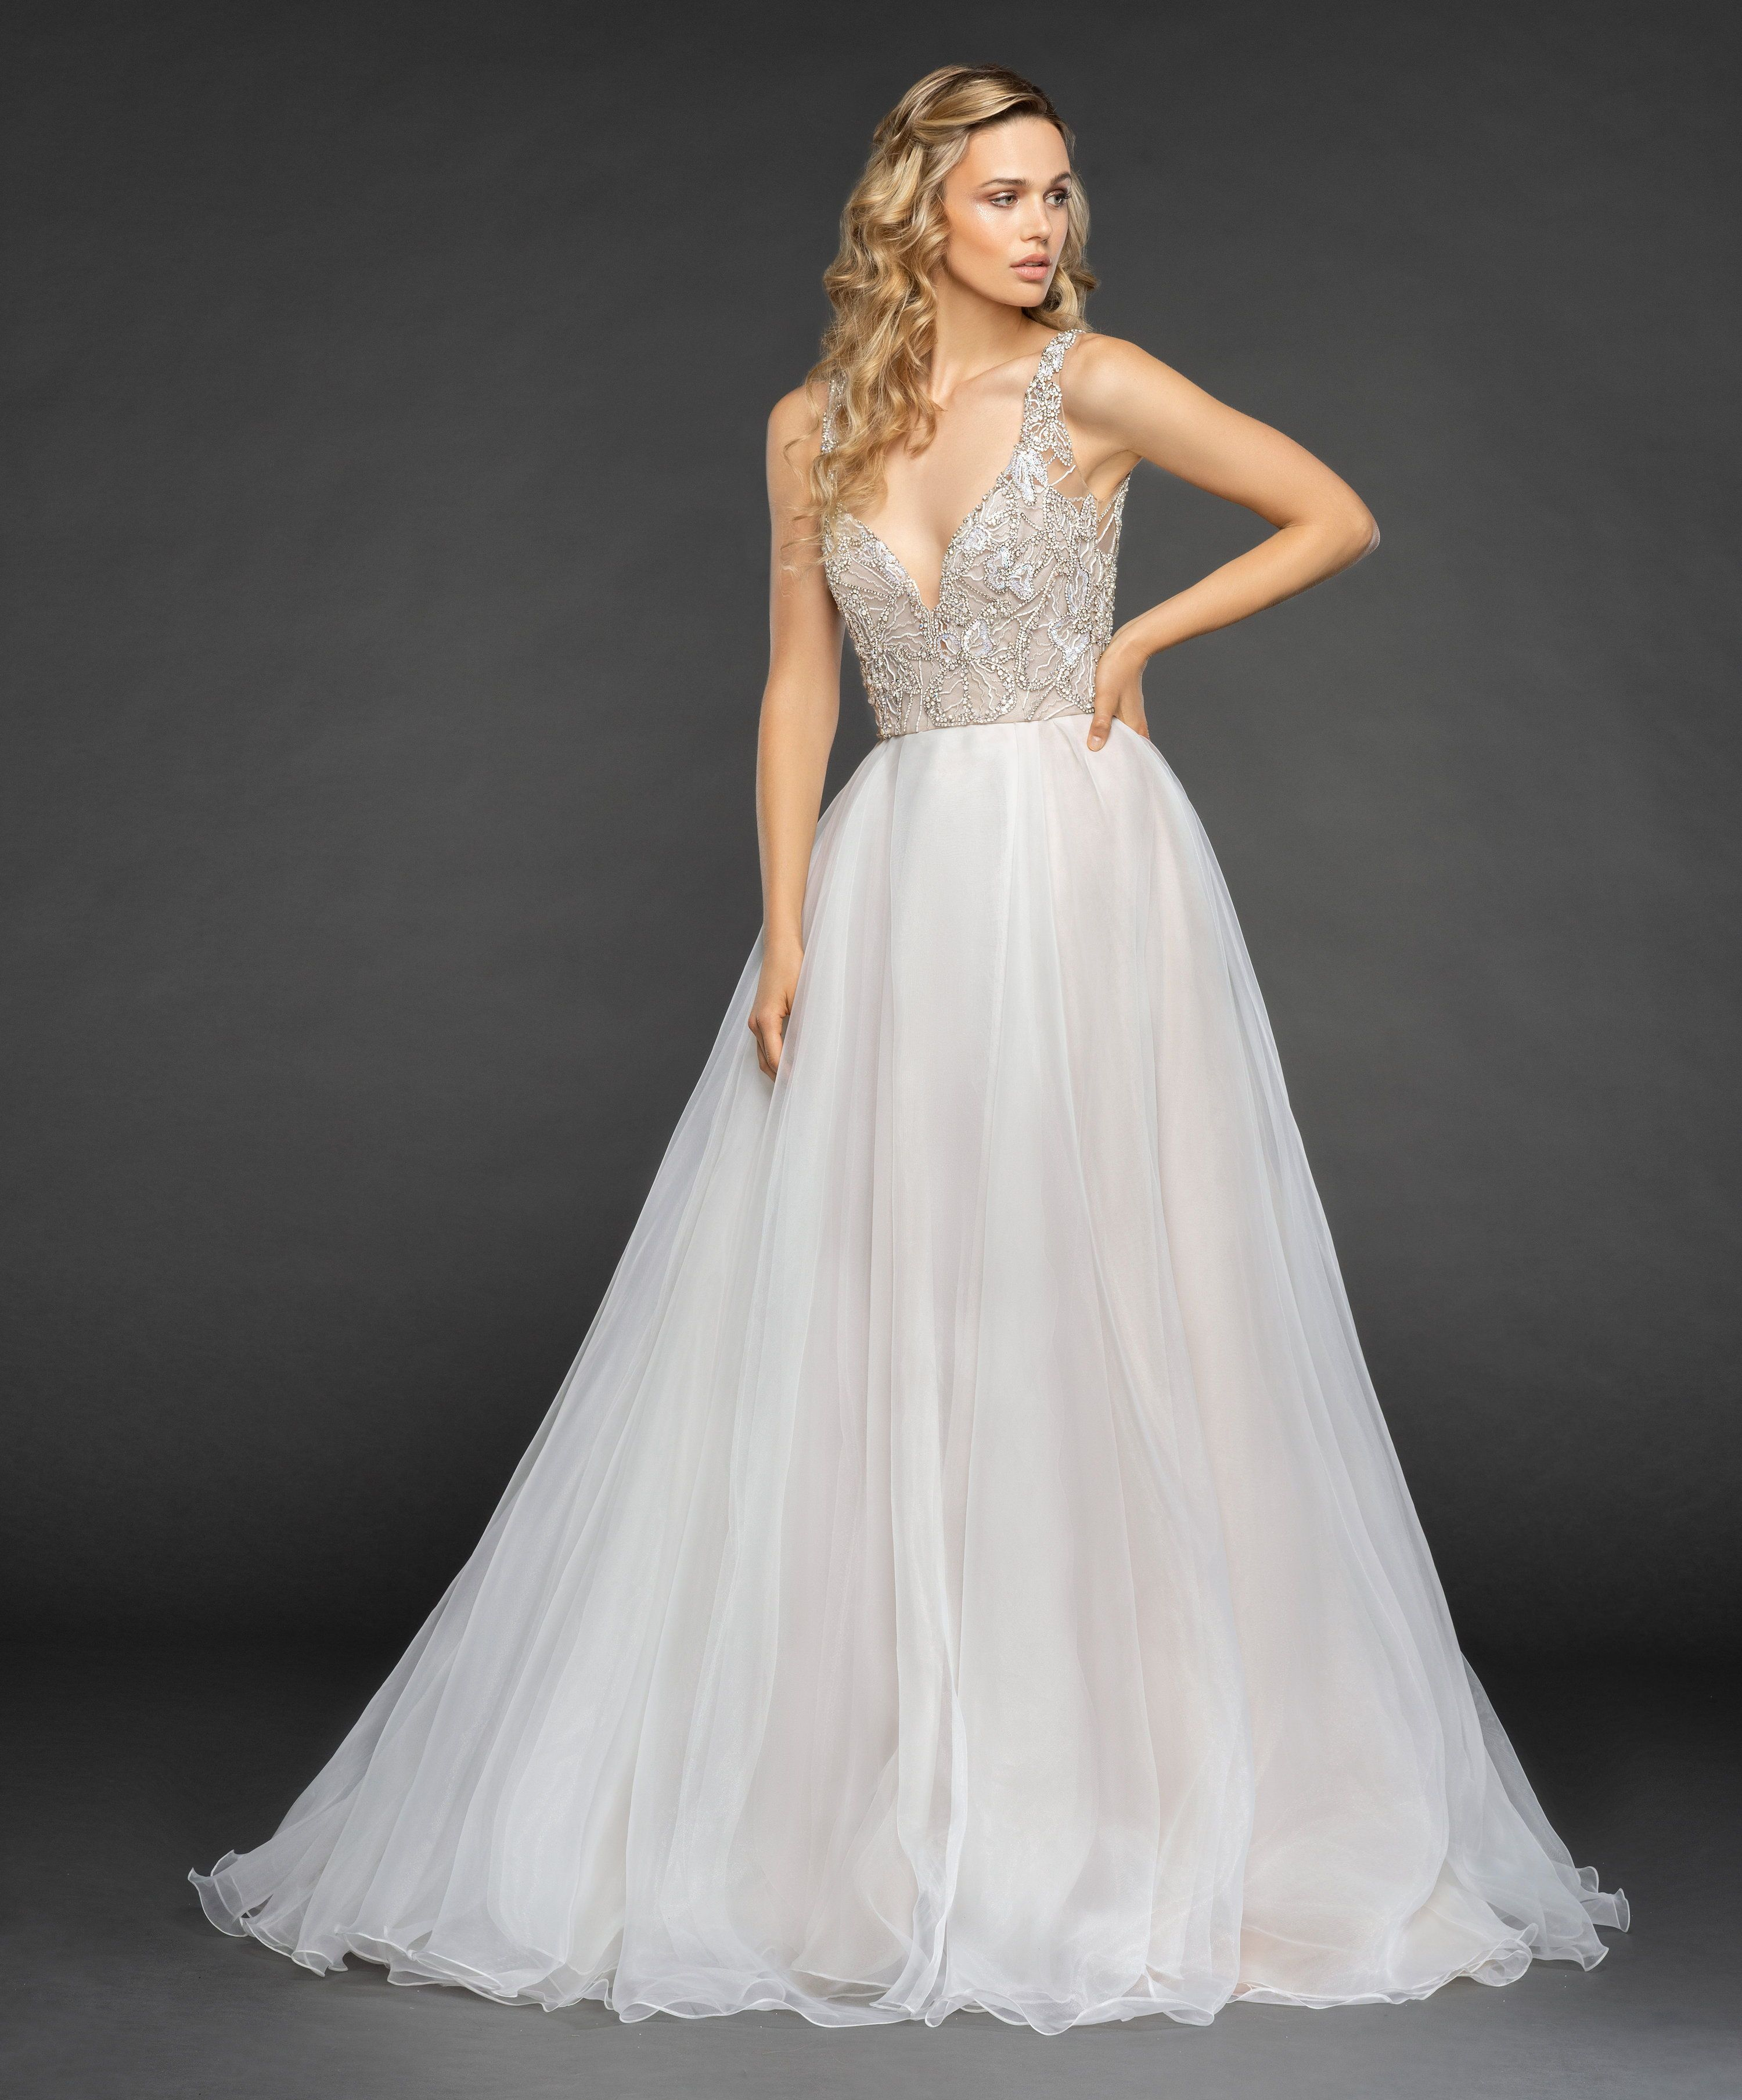 Warren Hayley Paige Fall 2018 Collection A Line Wedding Dress